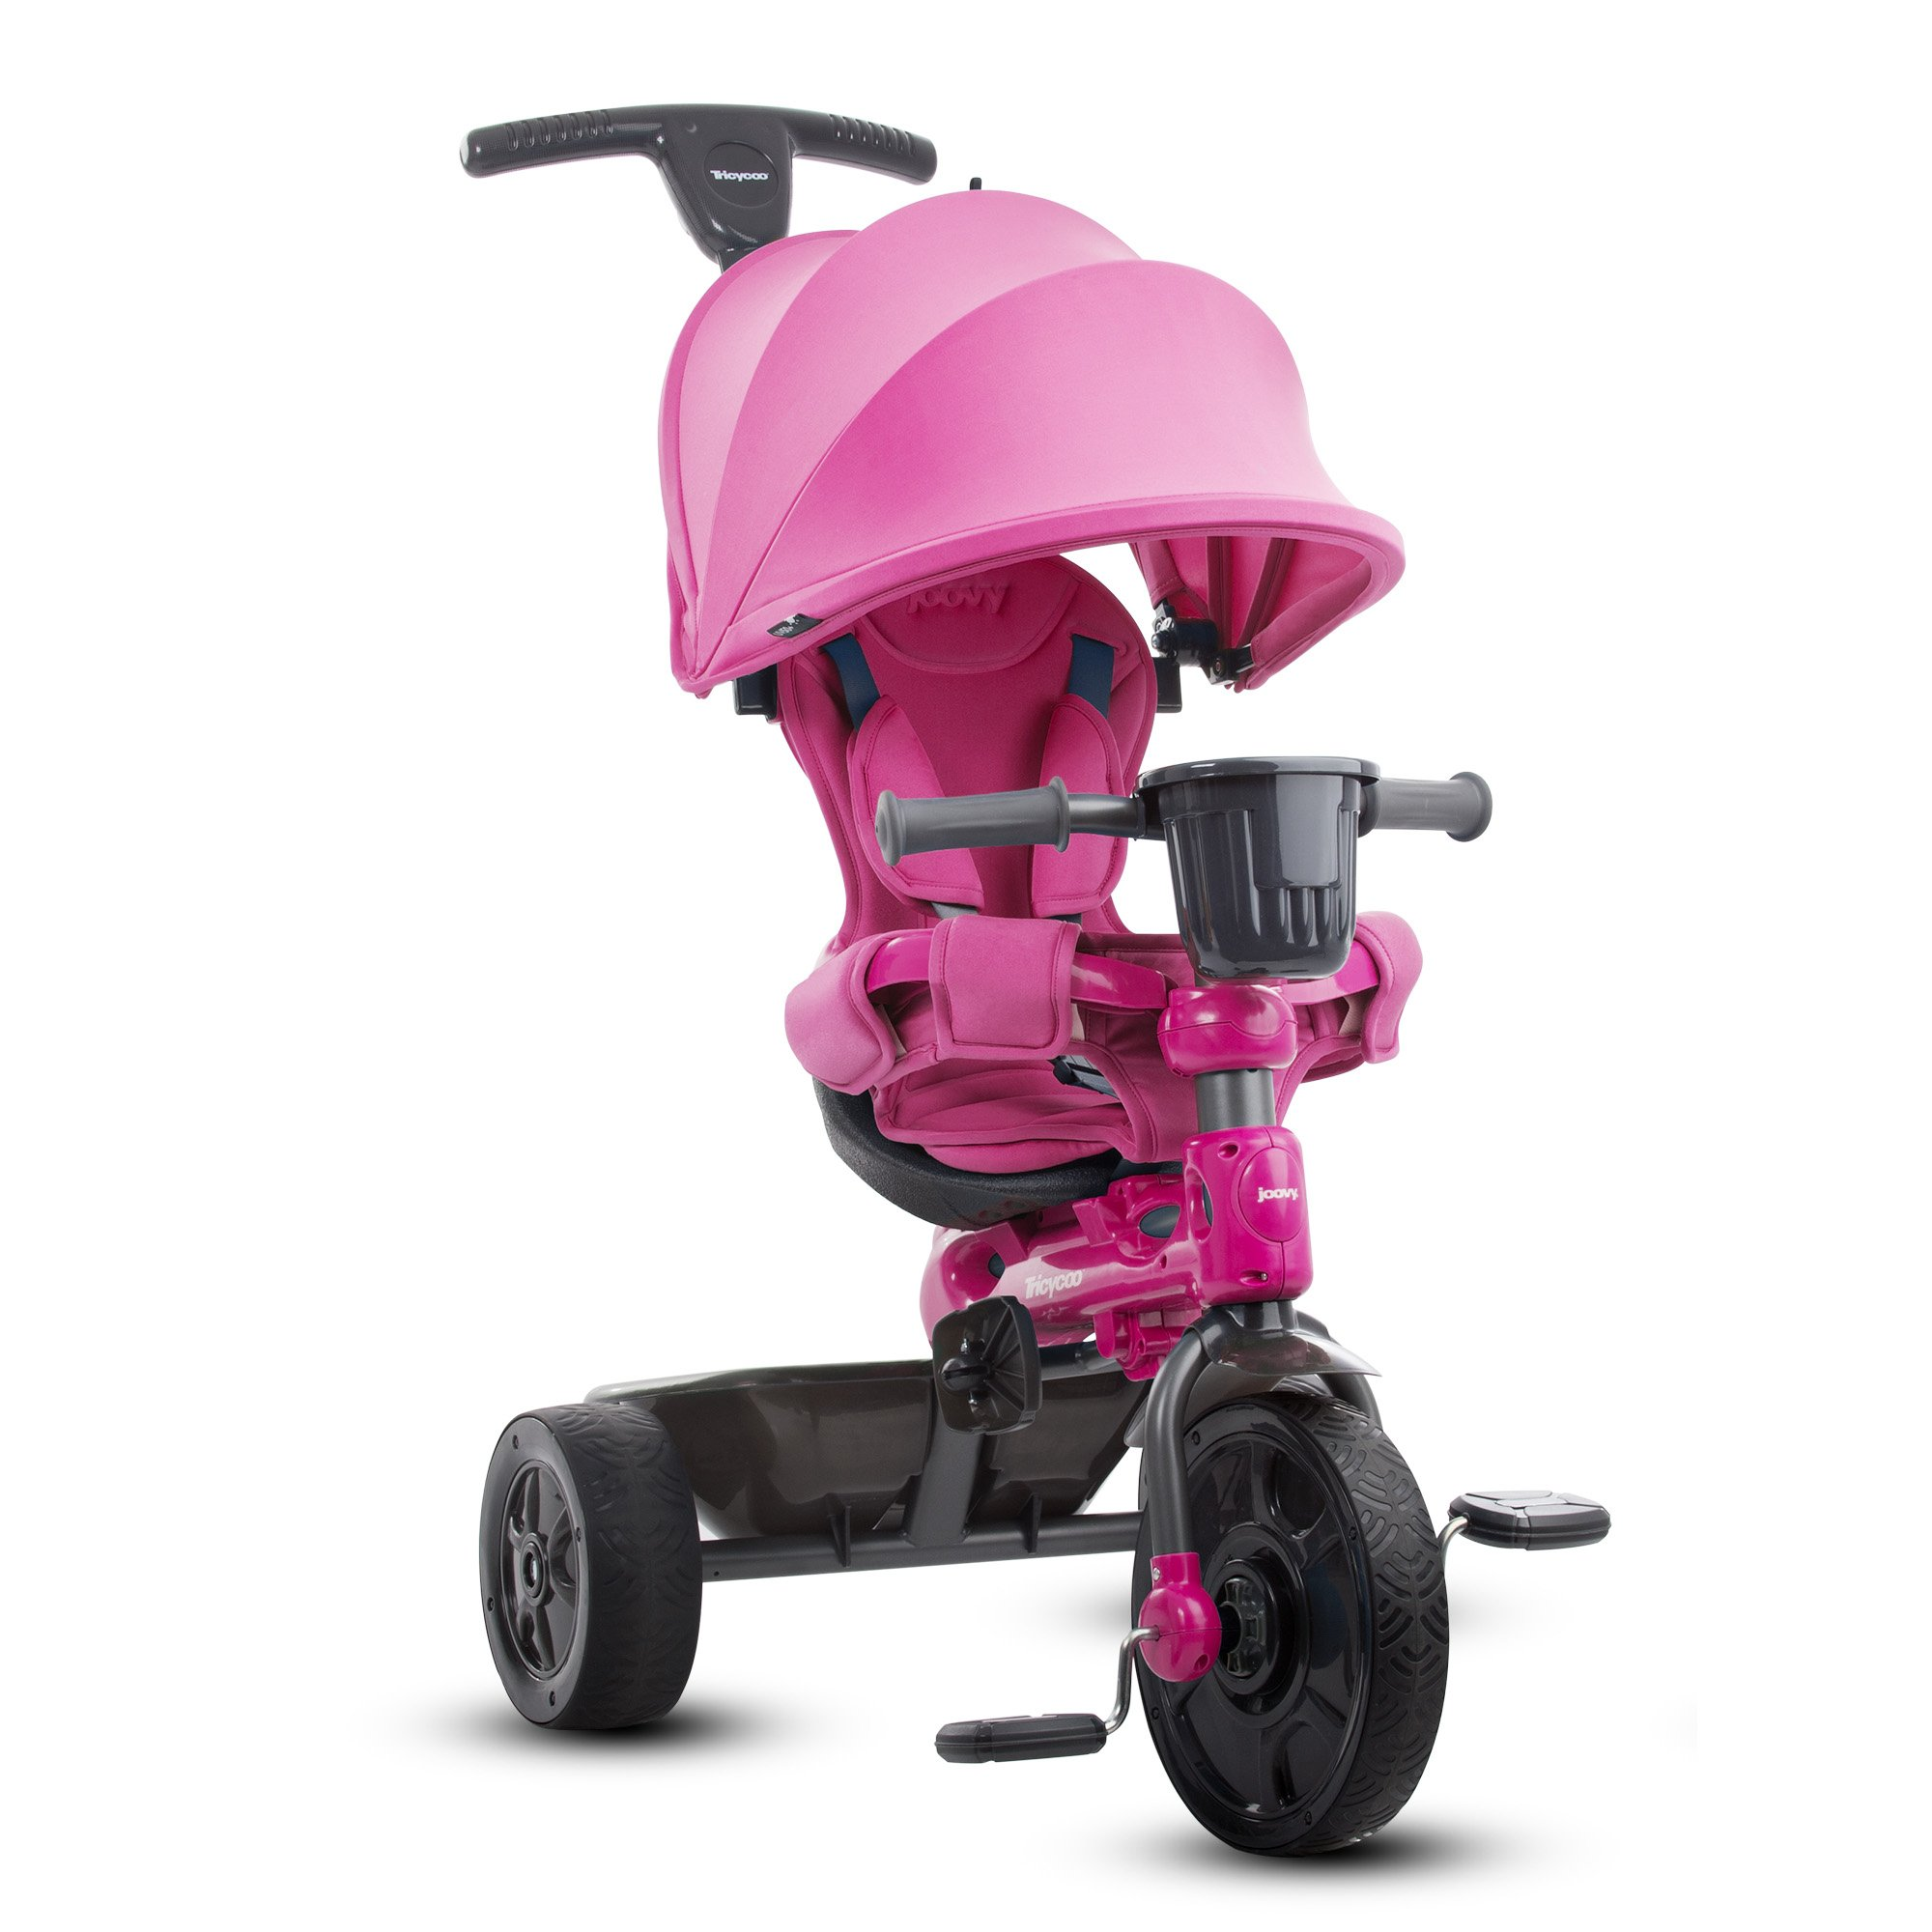 JOOVY Tricycoo 4.1 Tricycle, Pink by Joovy